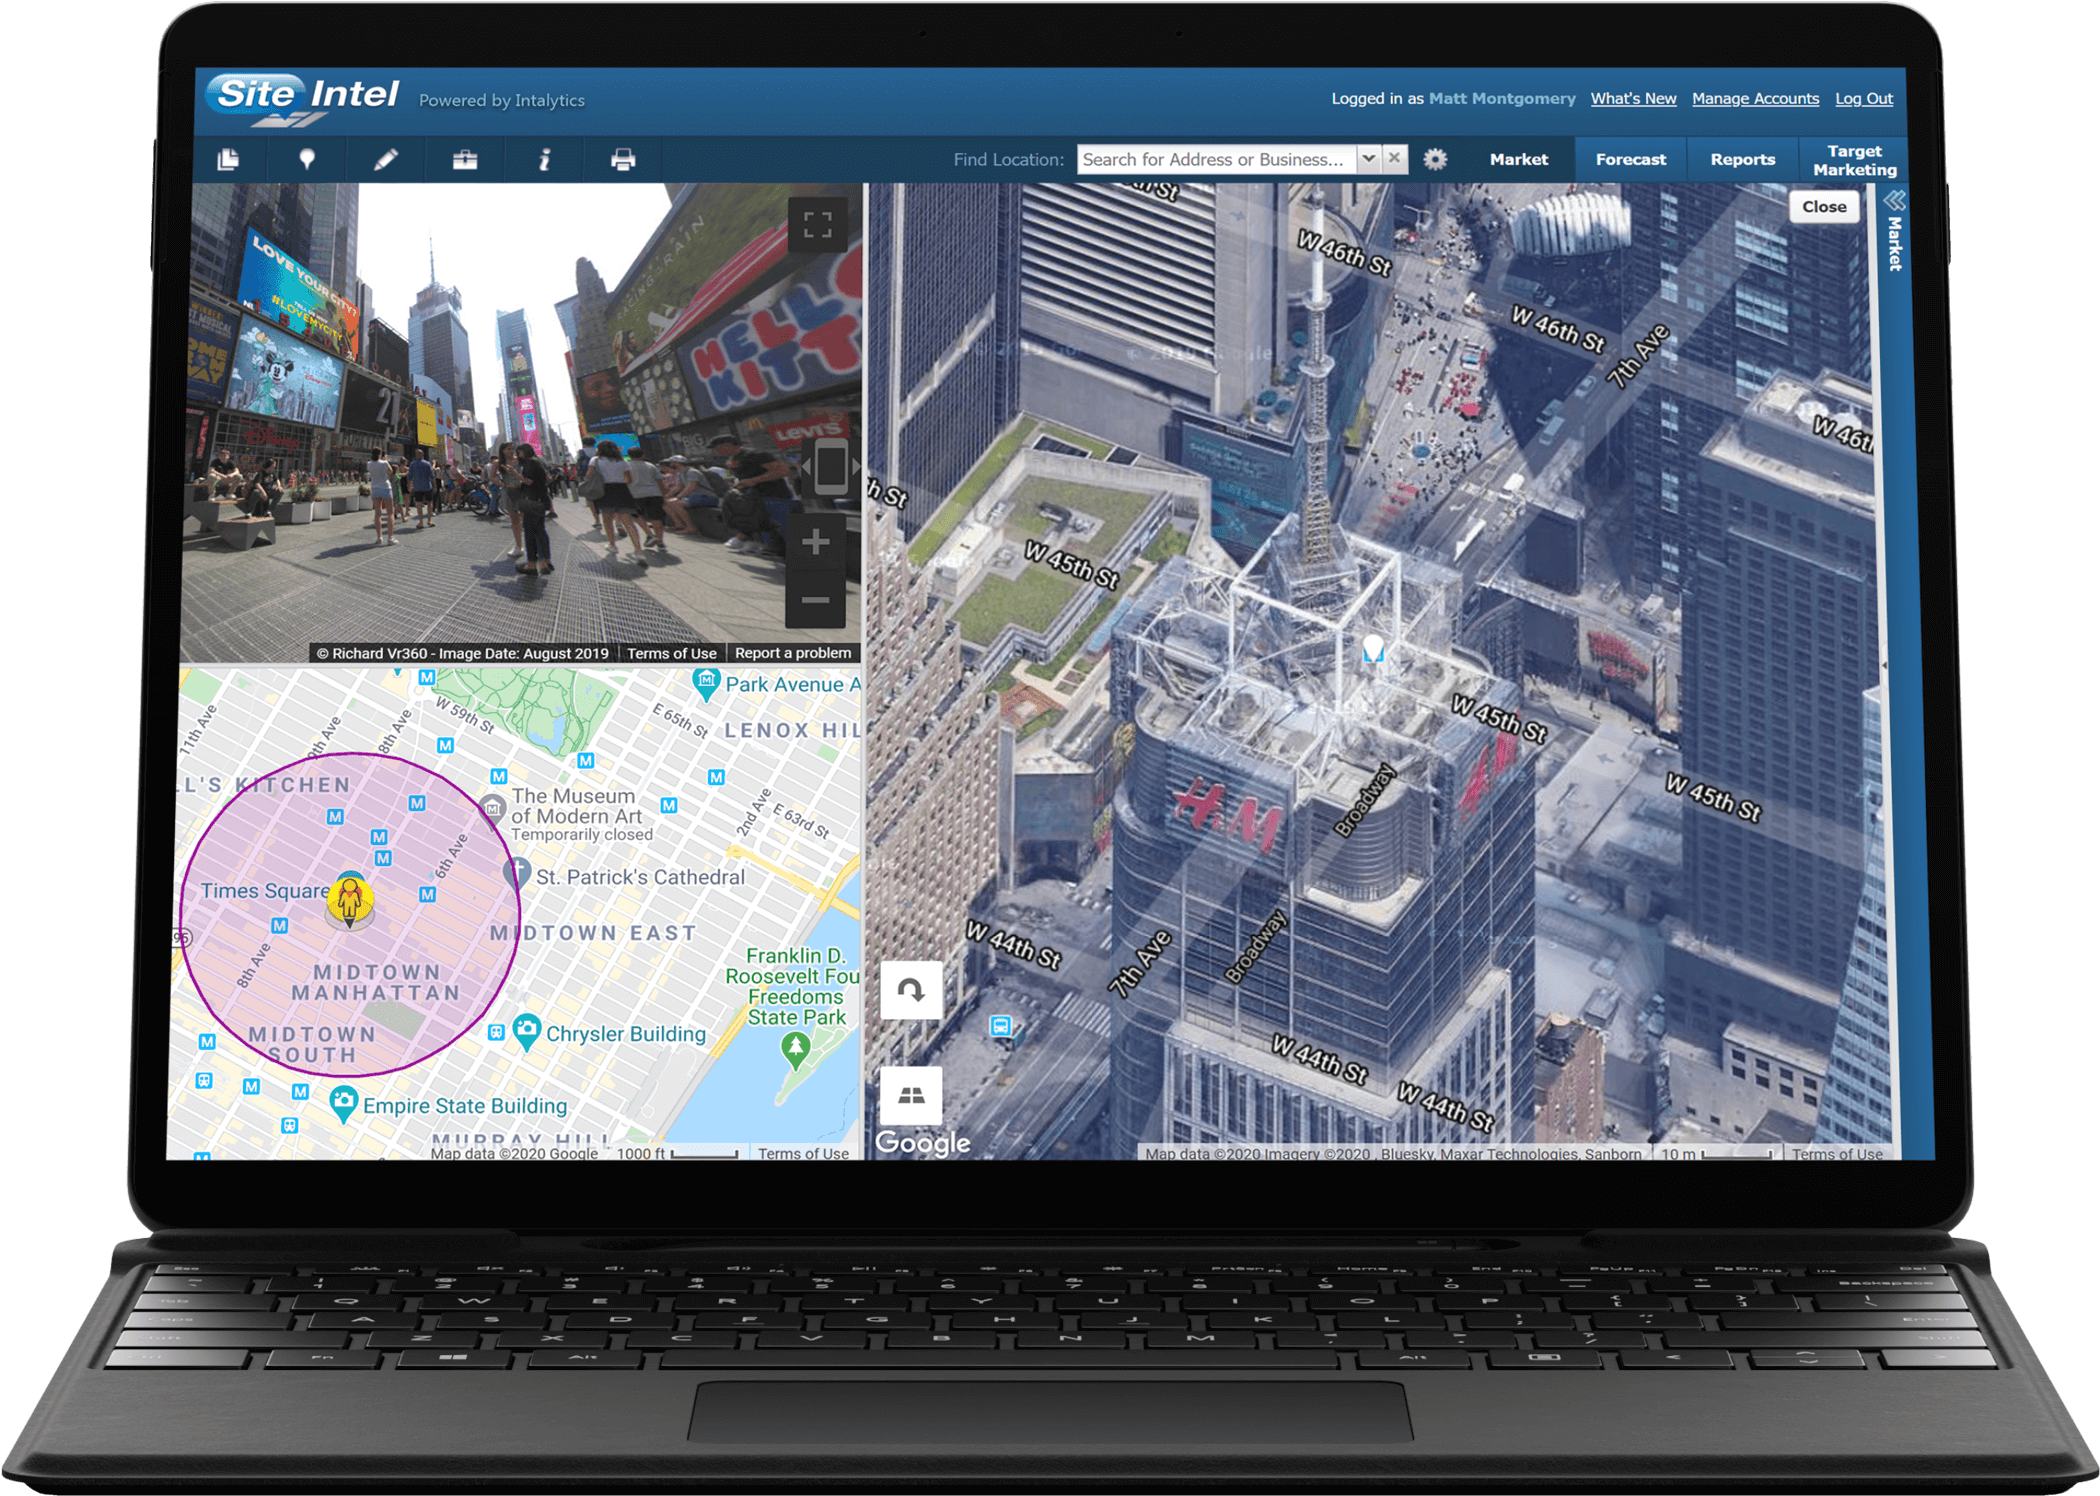 Tablet device and keyboard with map from Site Intel program on the screen.